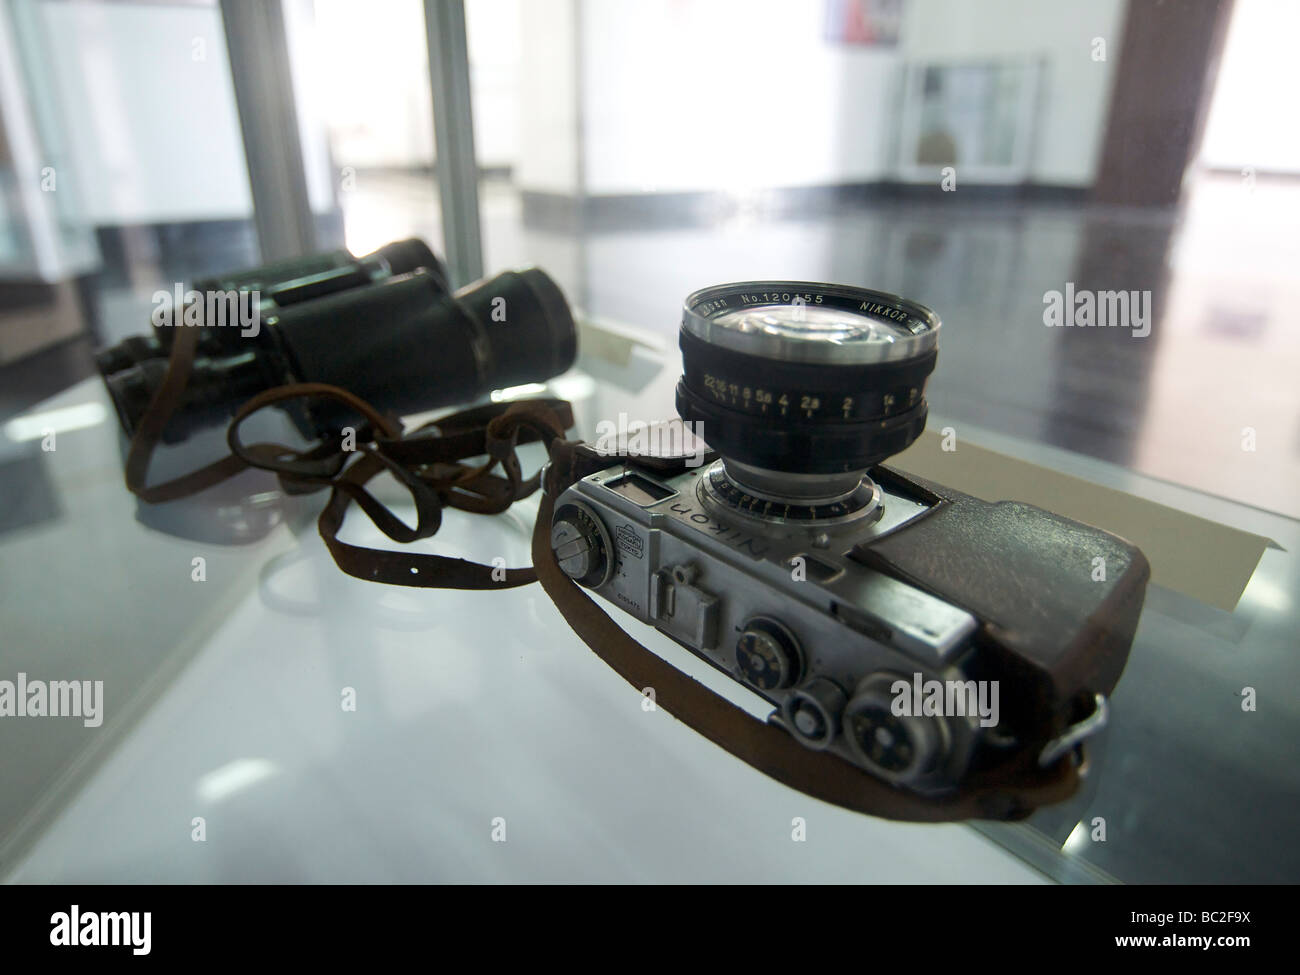 The actual binoculars and Nikon rangefinder camera used by Che Guevara. The Nikkor lens has a maximum aperture ofStock Photo